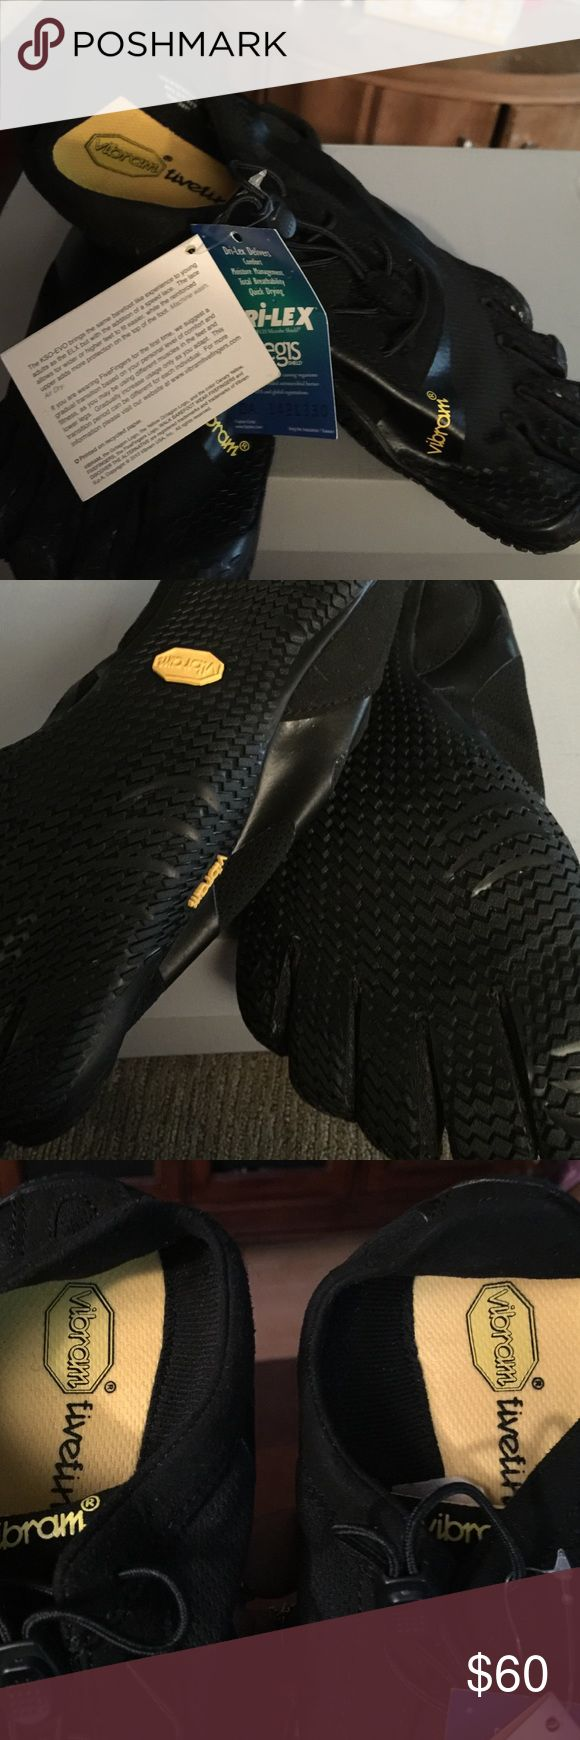 vibram five fingers fit tight